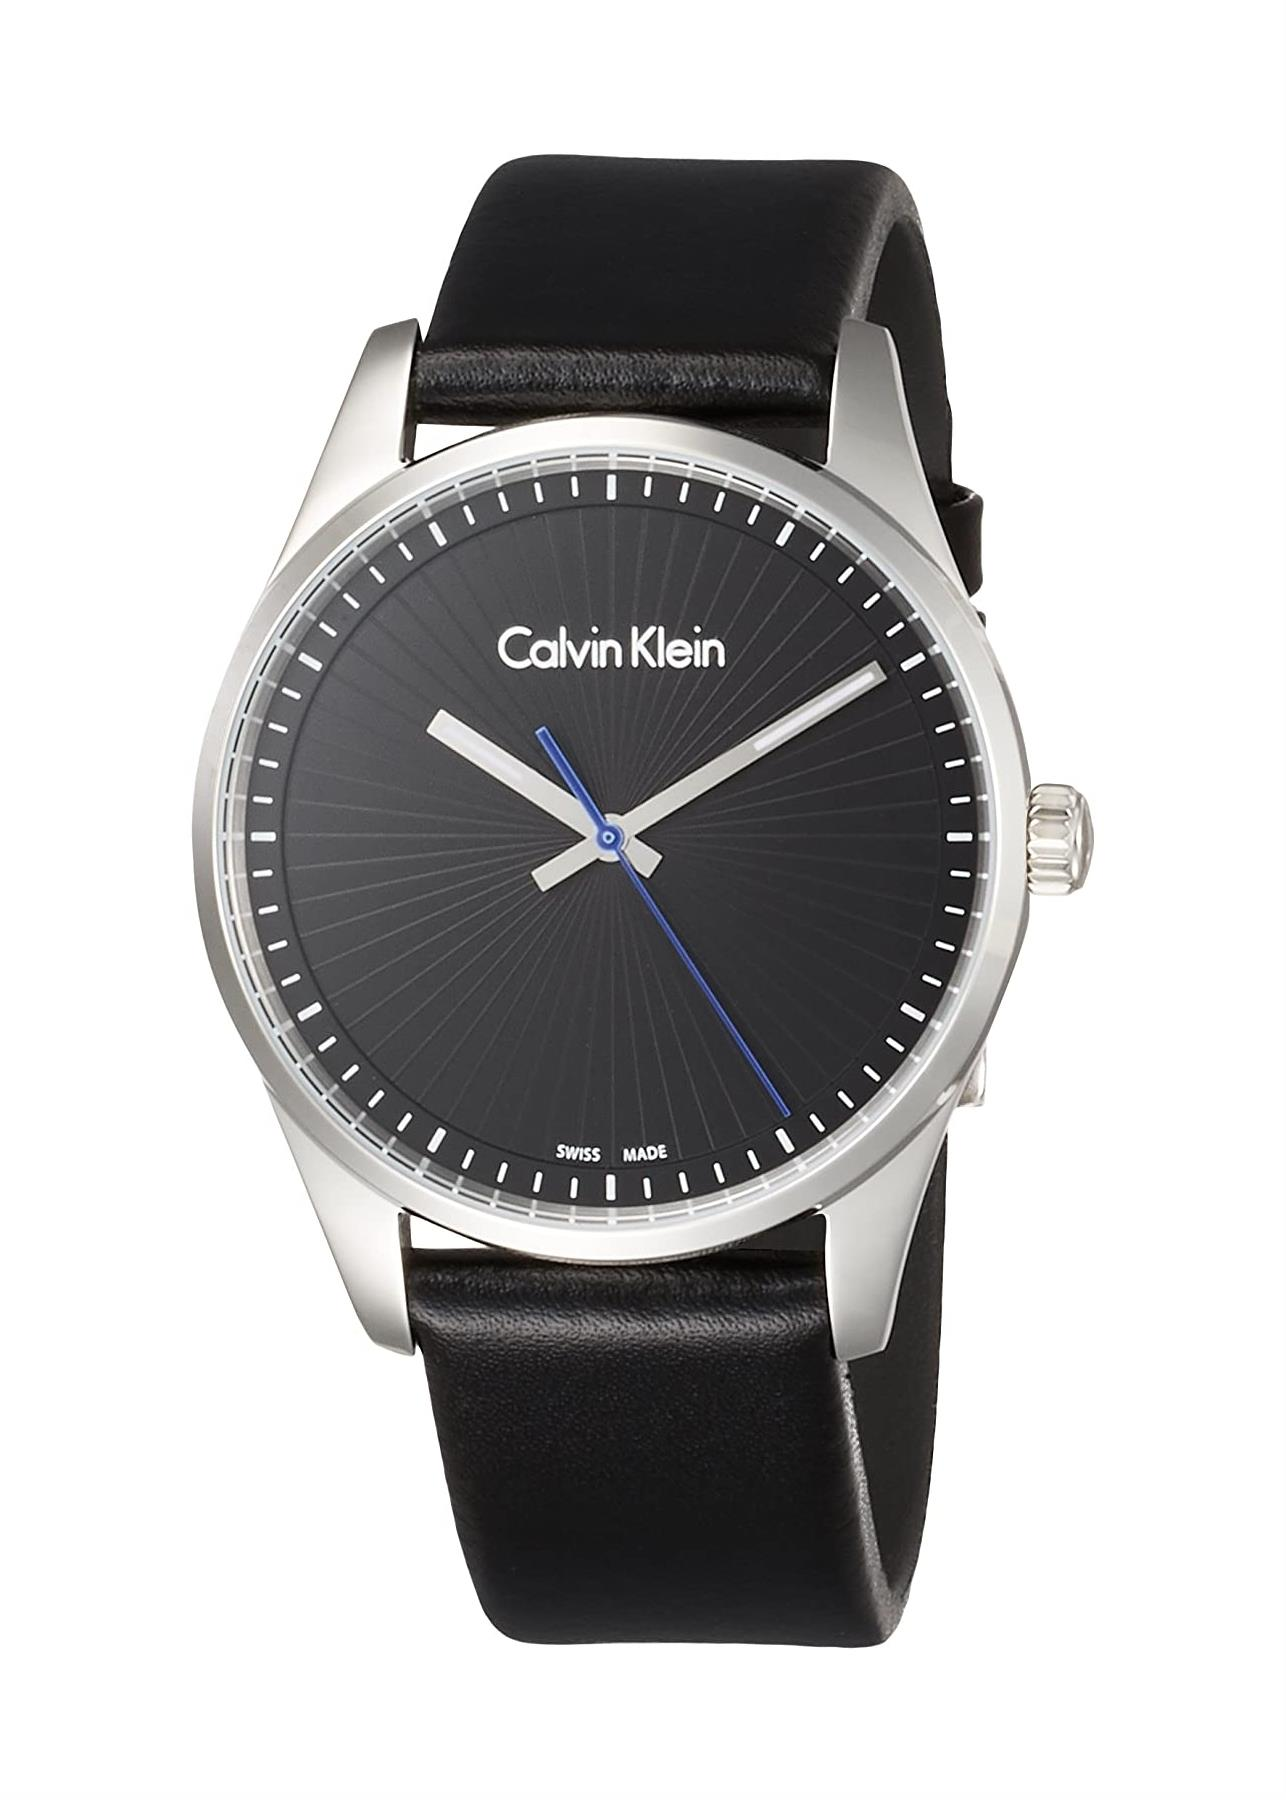 CK CALVIN KLEIN Ladies Wrist Watch Model STEADFAST K8S211C1